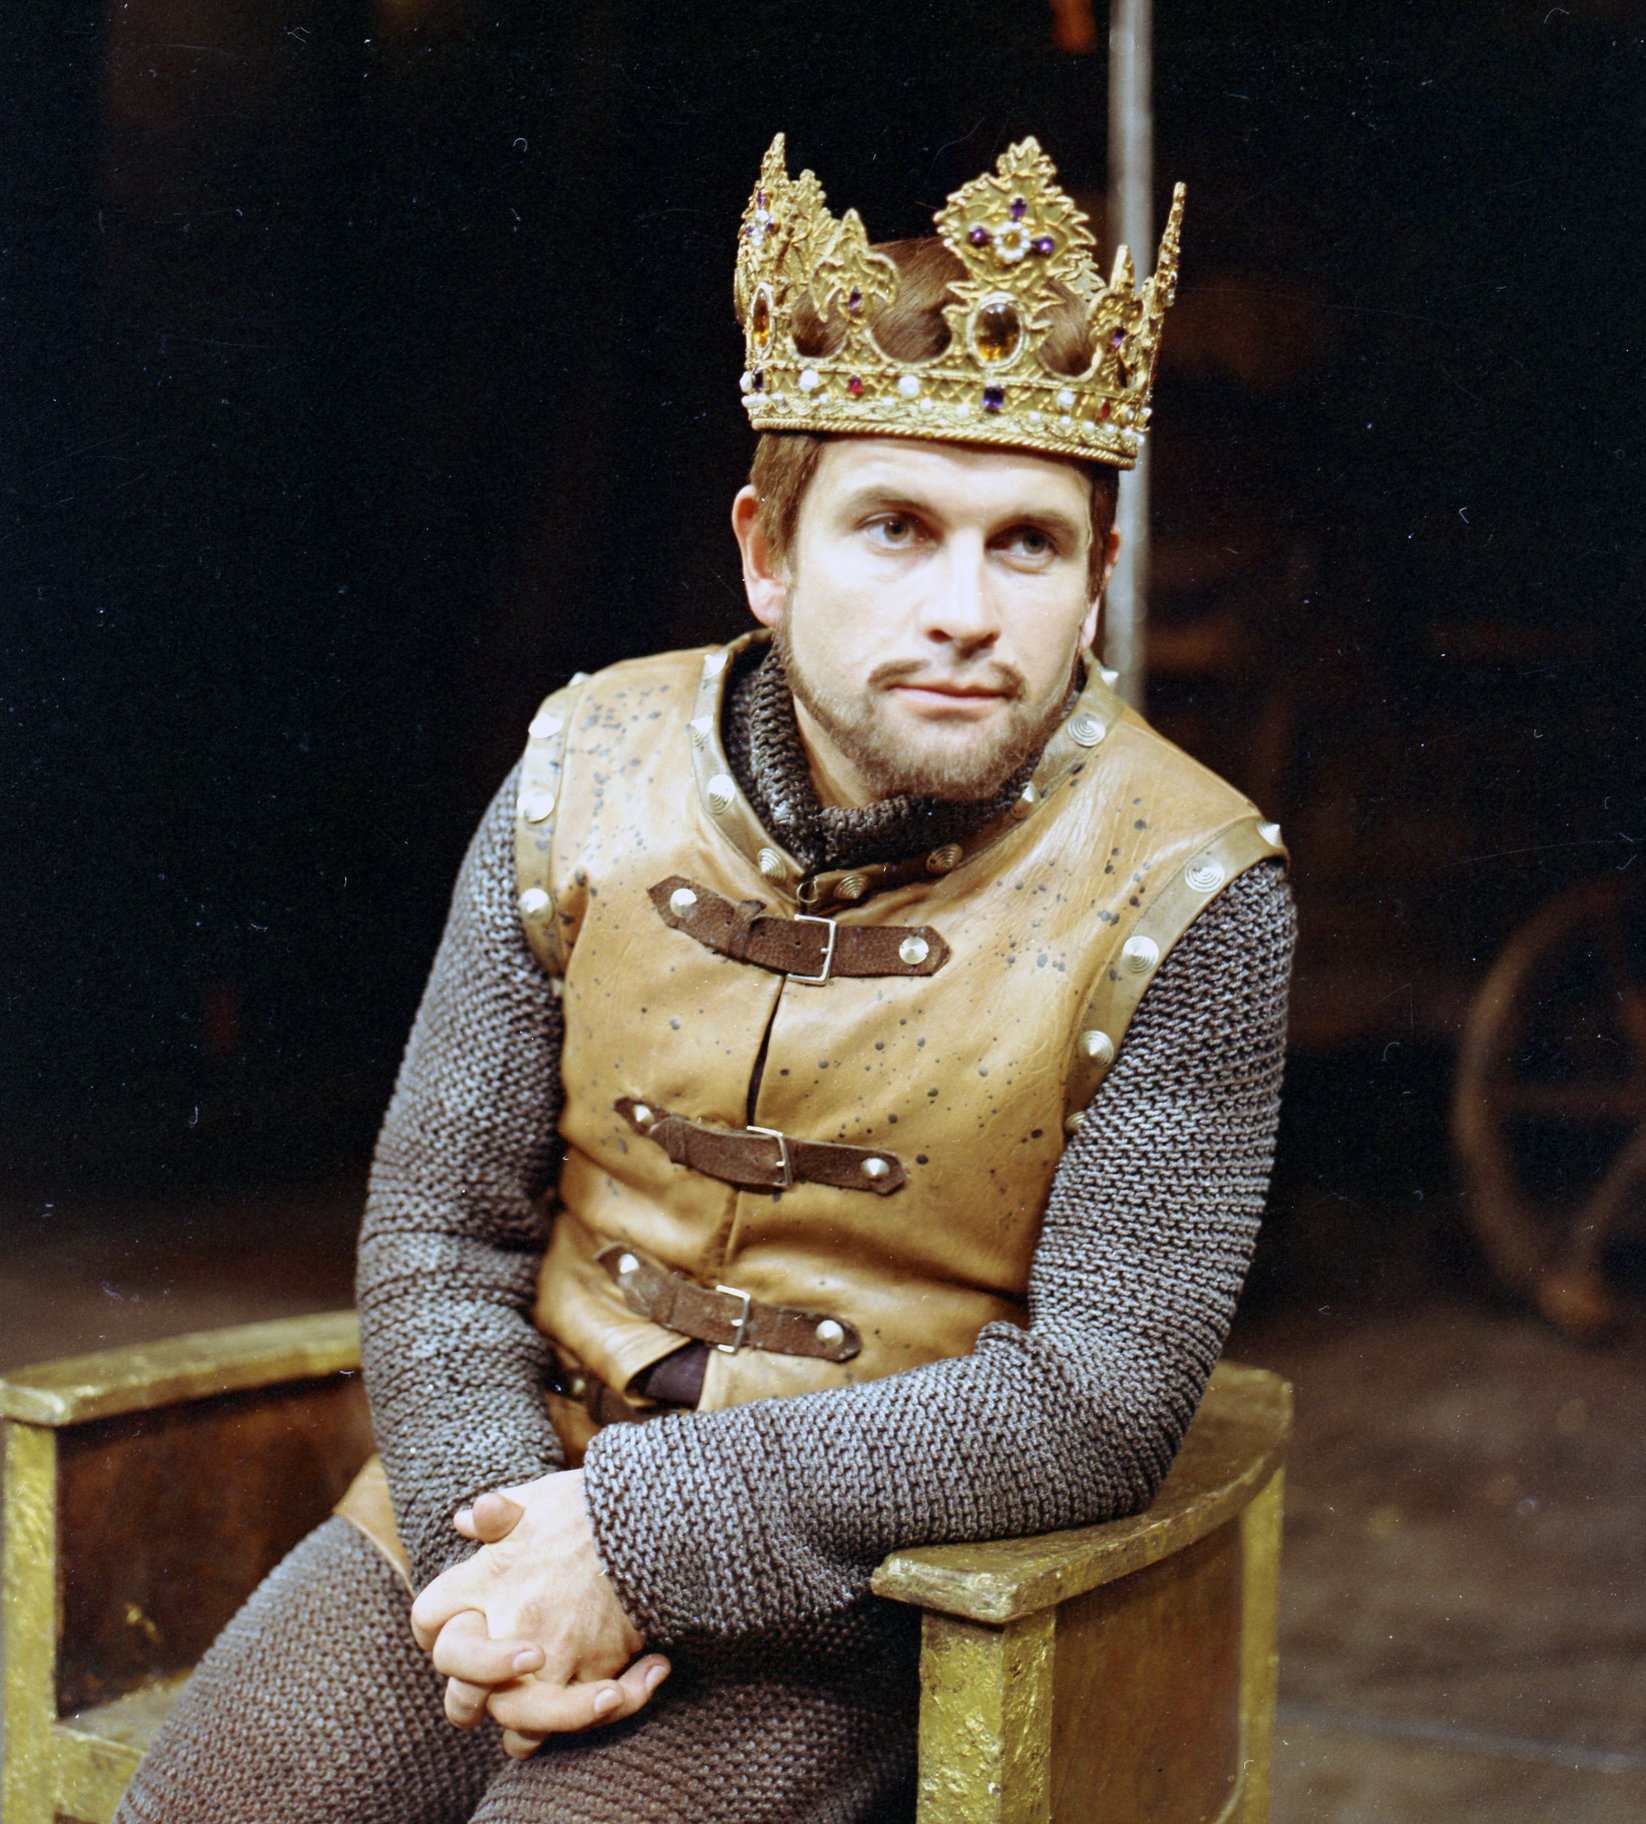 Ian Holm as Henry wears chain mail and a crown sitting in a wooden throne in the 1965 production of Henry V